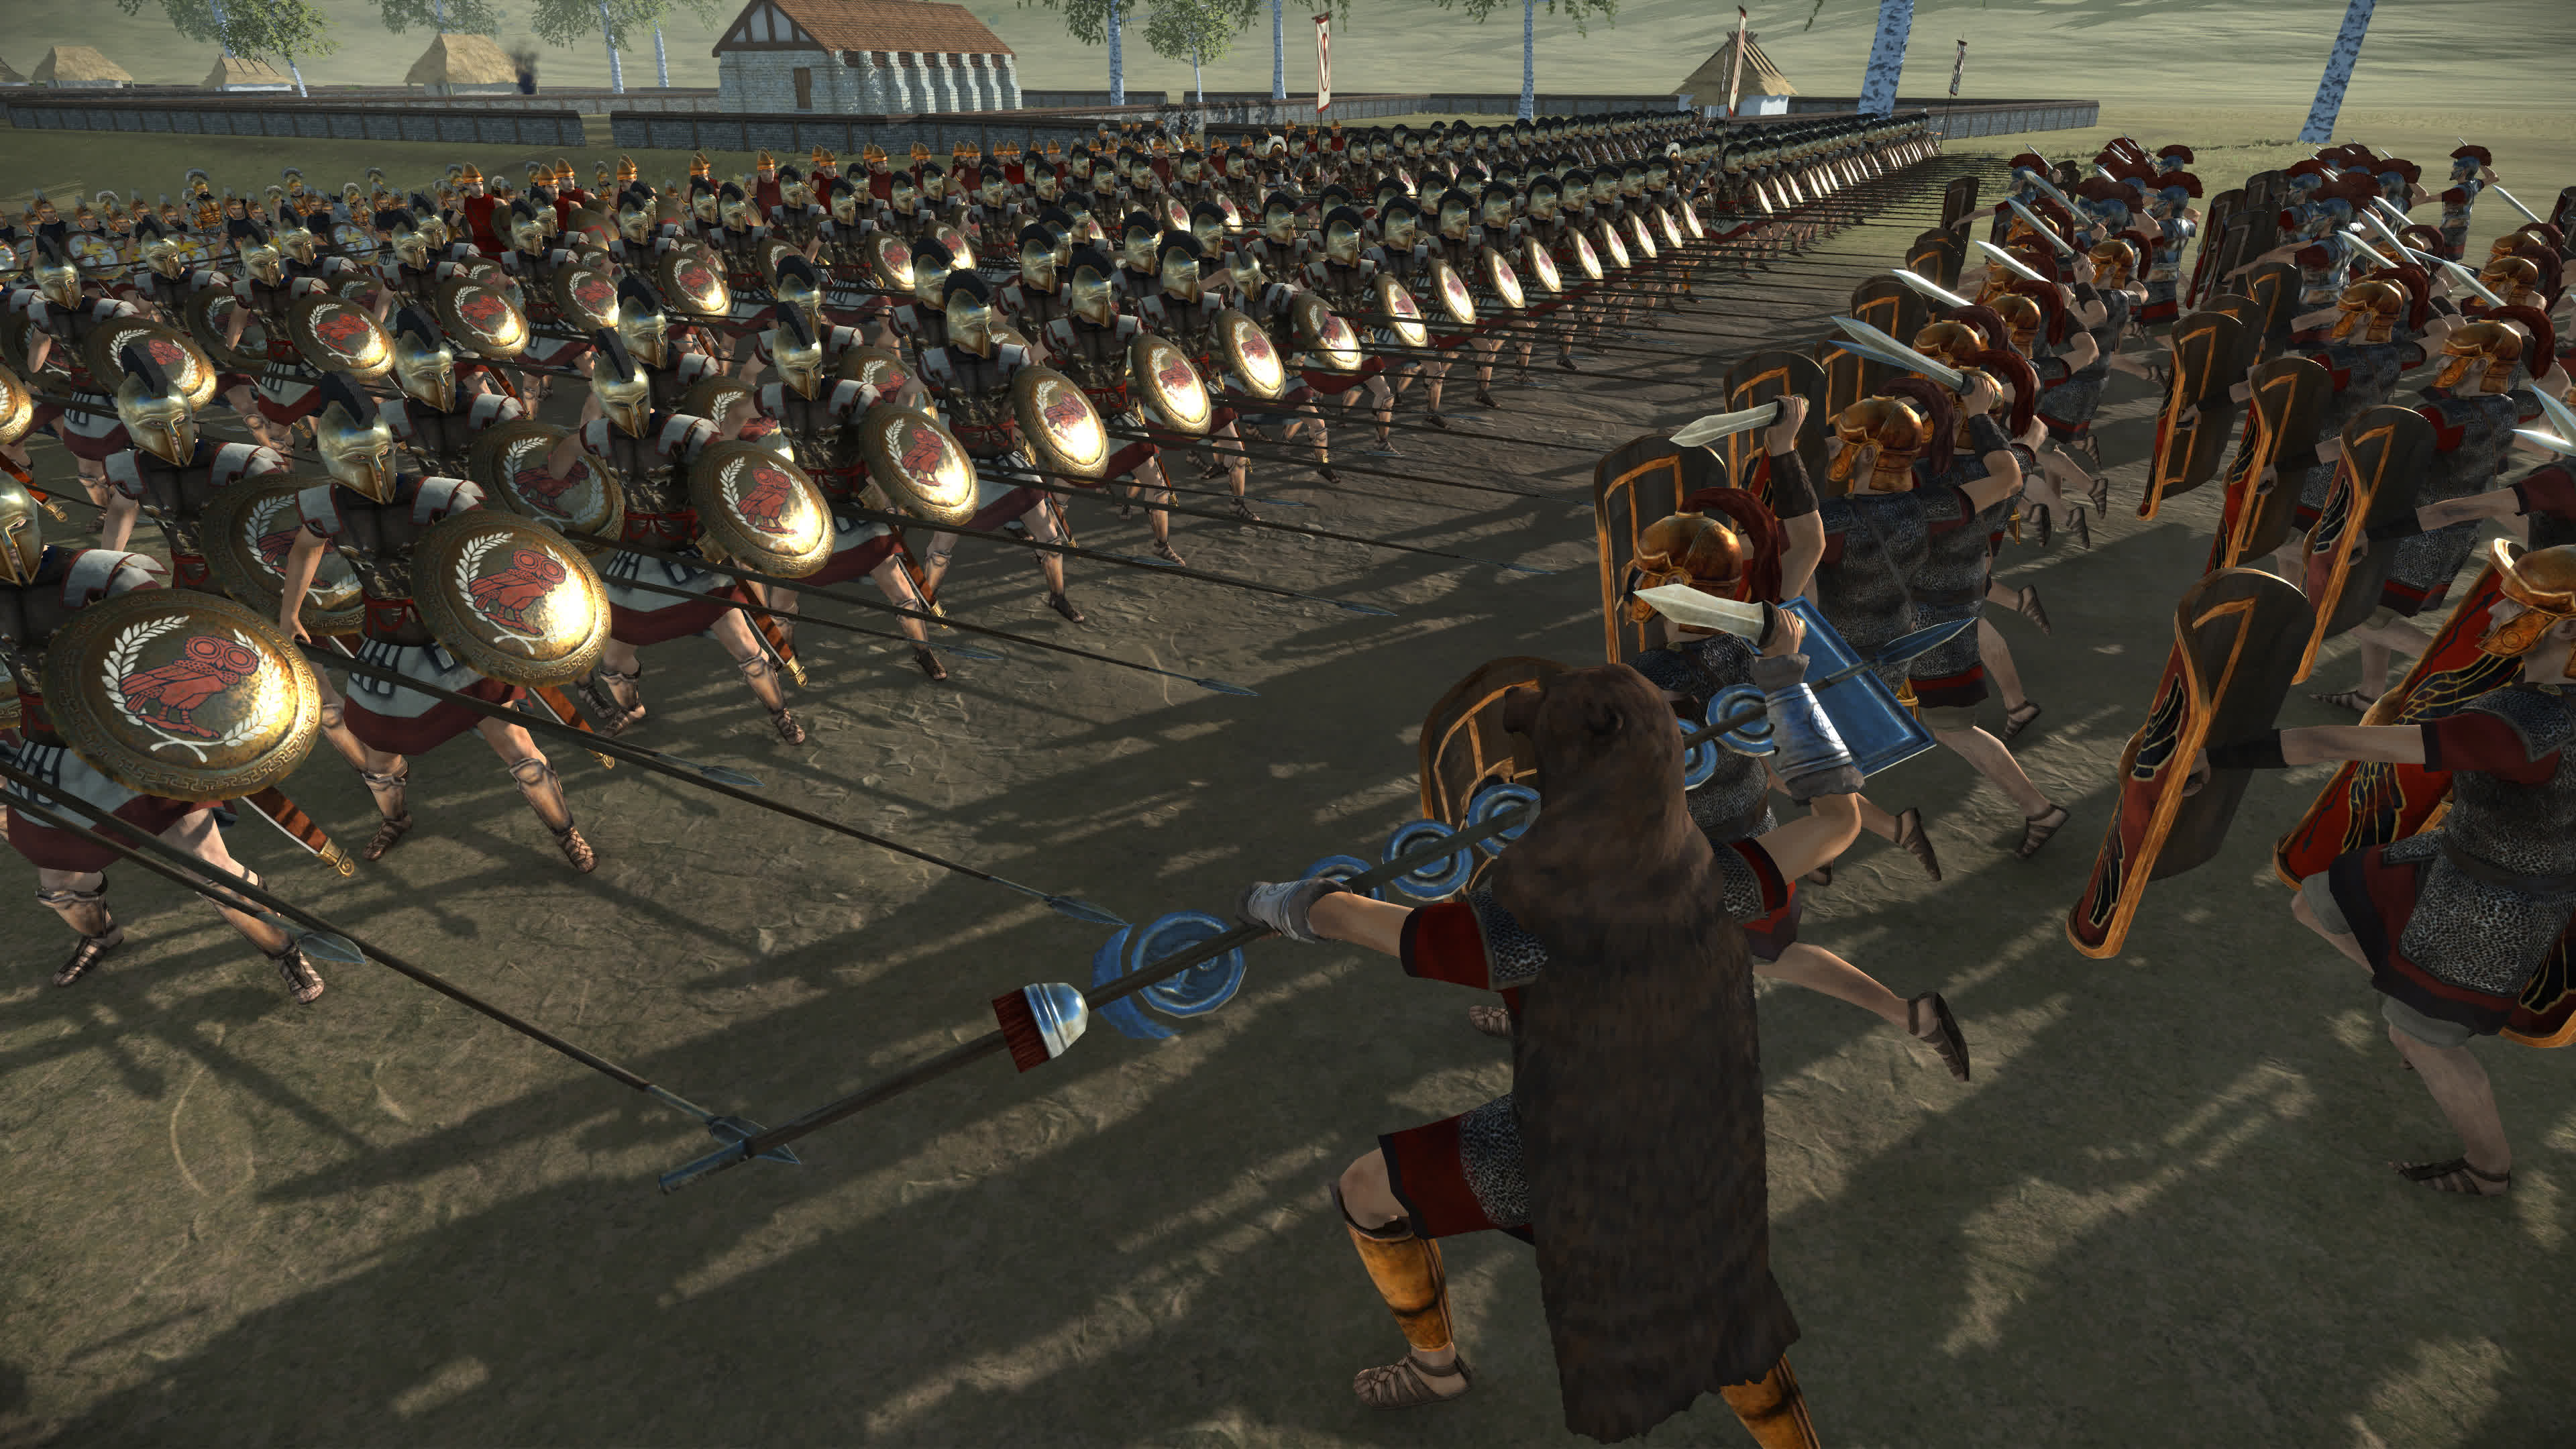 Total War: Rome is getting a full 4K remaster on April 29